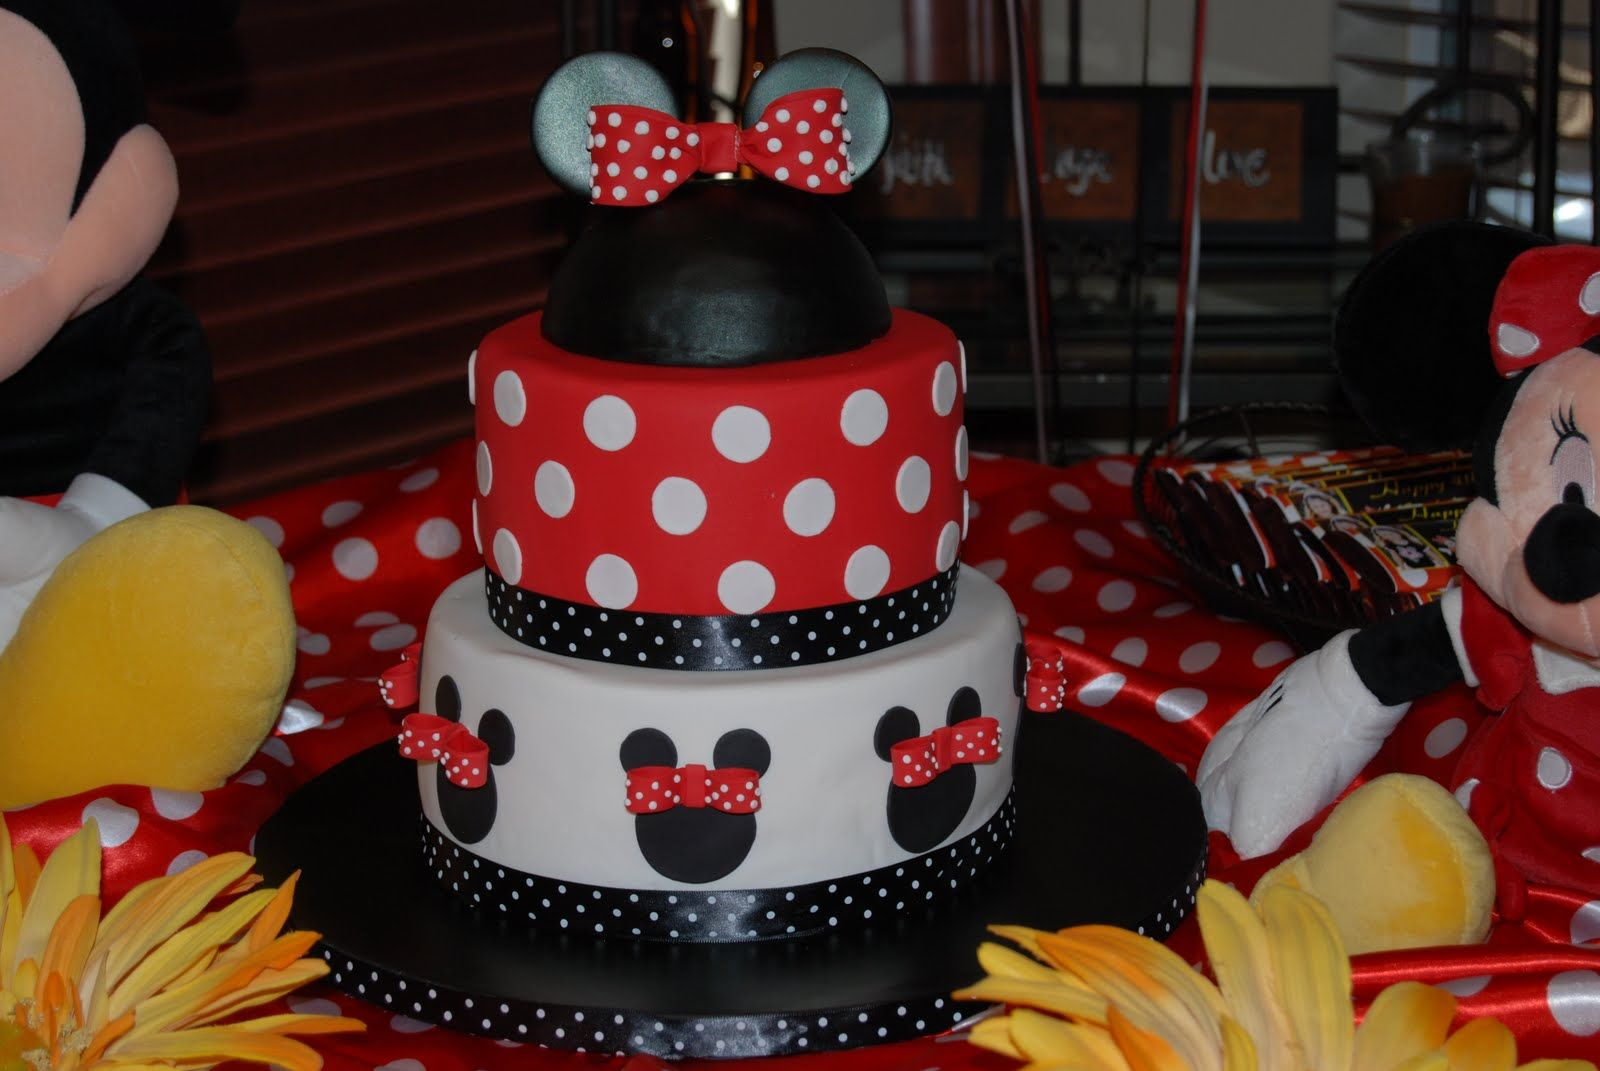 Astonishing Red And White Minnie Mouse Cake Decorating ...